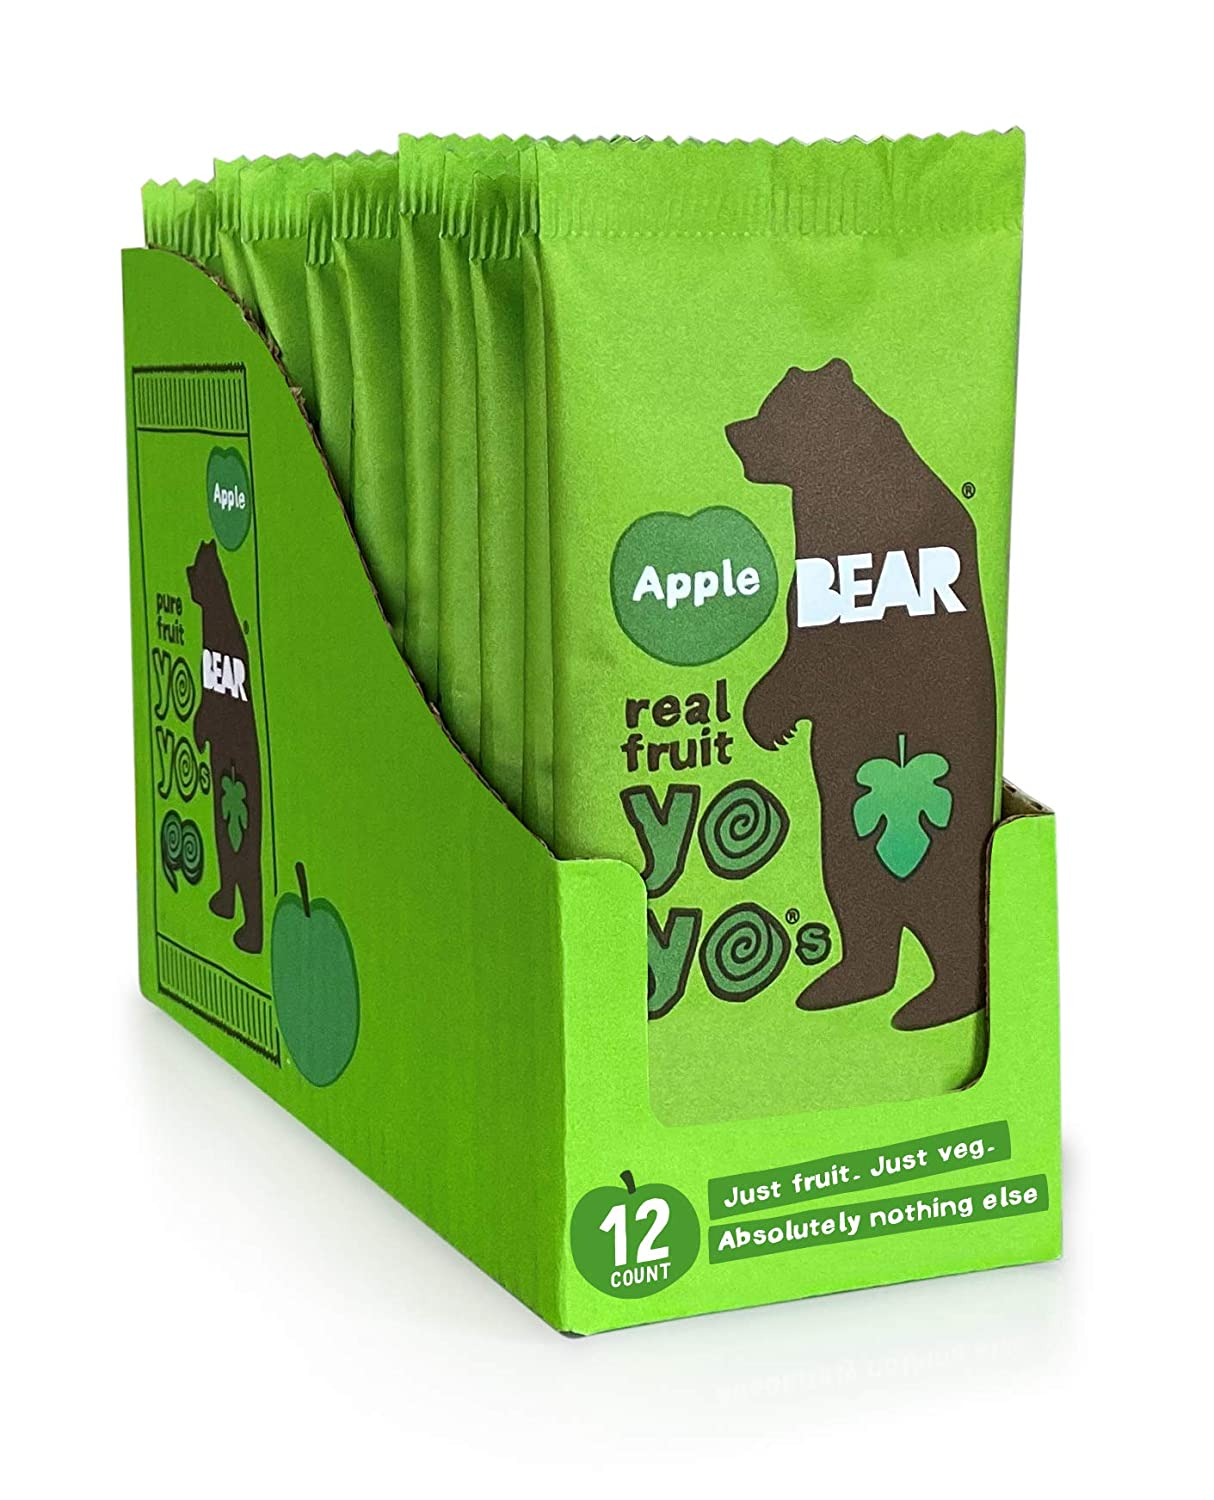 BEAR - Real Fruit Yoyos - Apple - 0.7 Ounce (12 Count) - No added Sugar, All Natural, non GMO, Gluten Free, Vegan - Healthy on-the-go snack for kids & adults